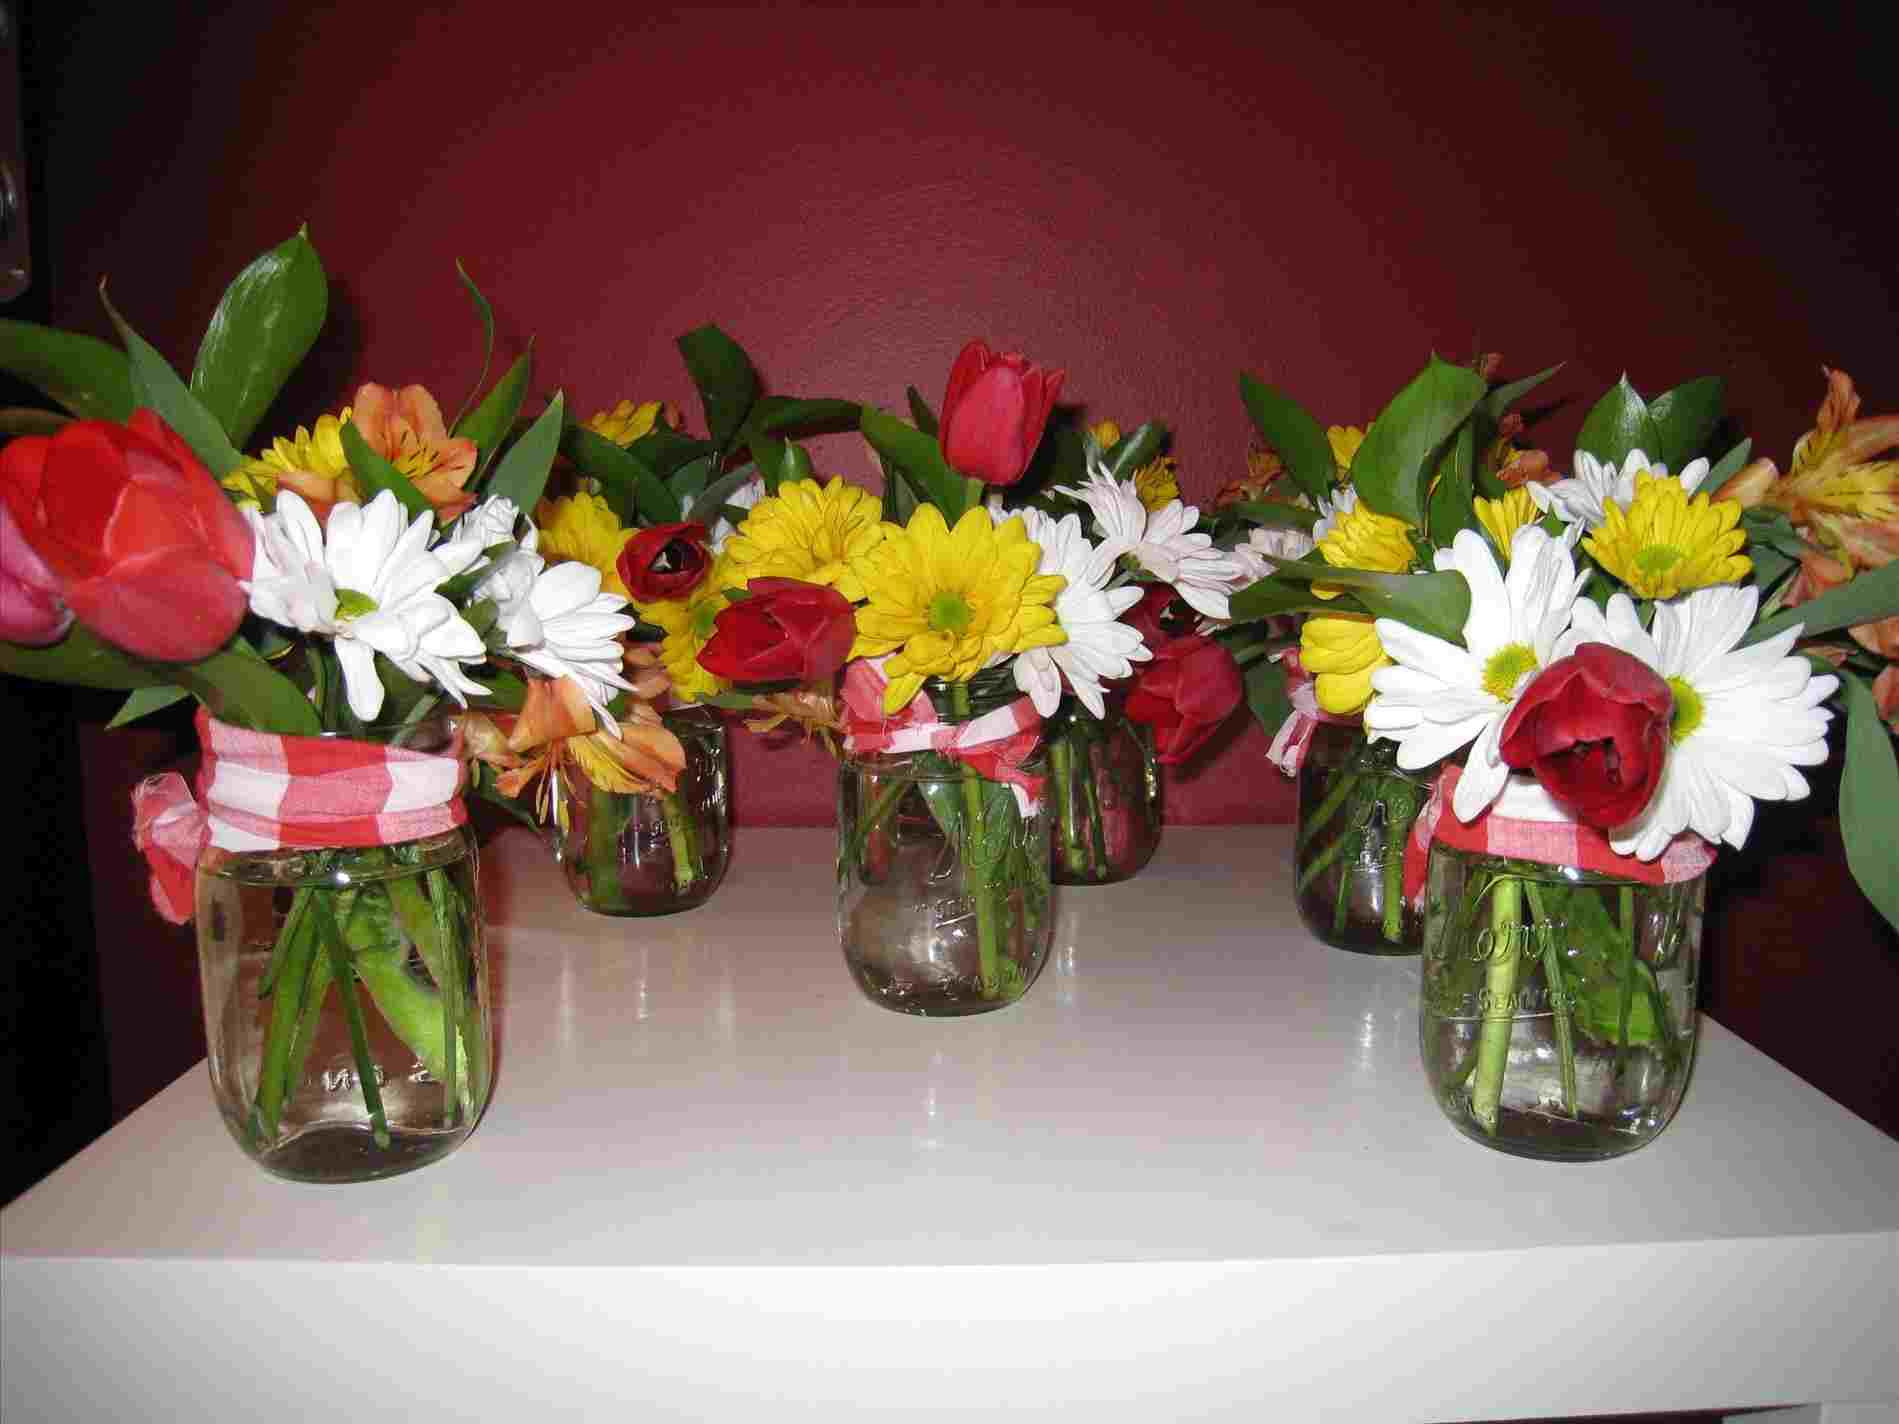 cowboy boot vase centerpiece of cowboy centerpieces ideas diazxcode with permanently western table centerpiece ideas cohorhcohoesfarmersmarketcom moved cowboy centerpieces ideas permanently western table centerpiece ideas